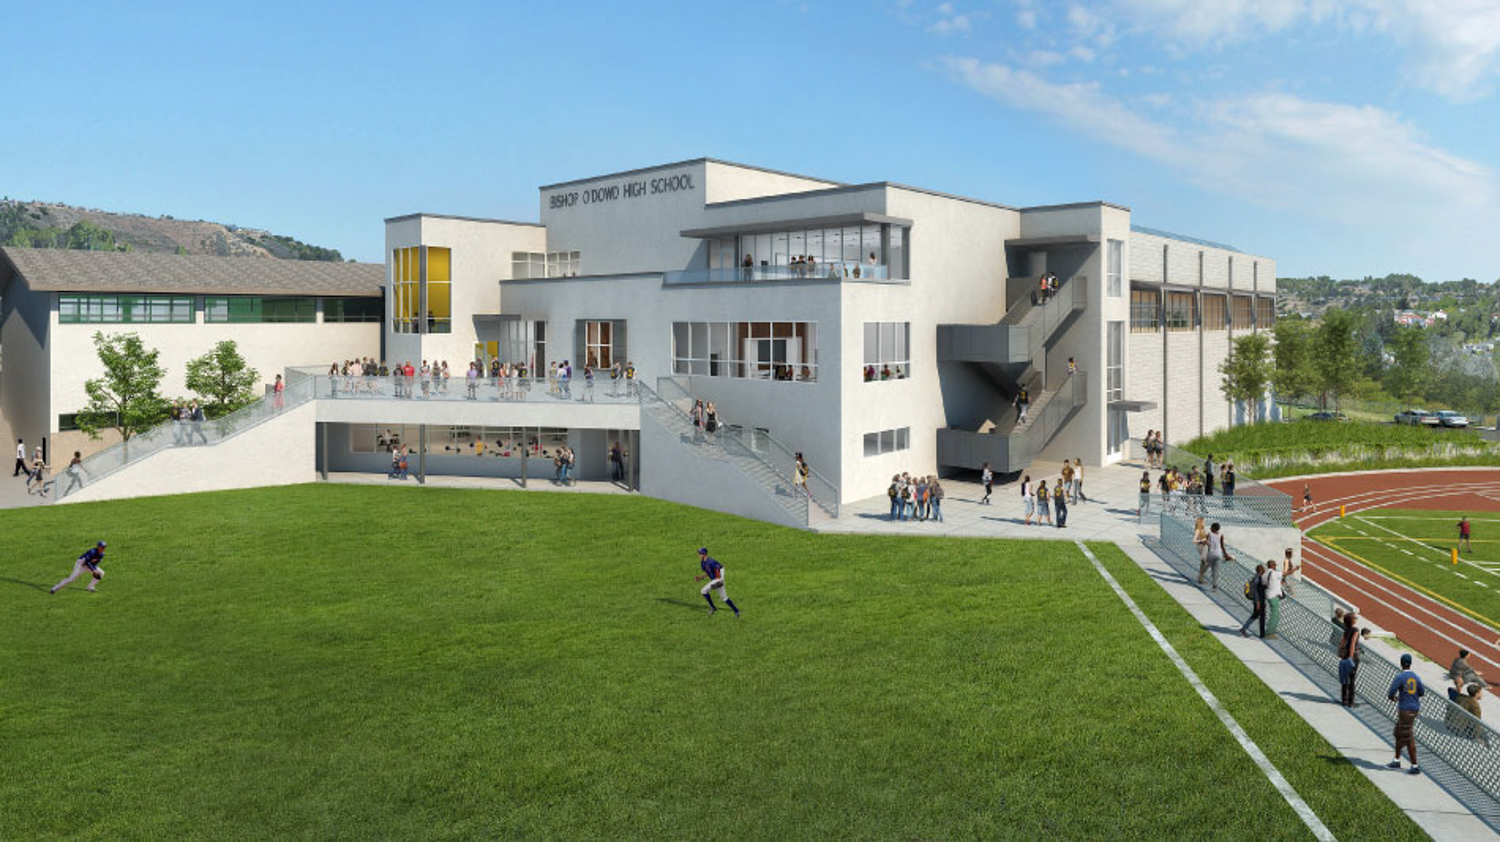 Bishop O'Dowd High School Center at 9500 Stearns Avenue, rendering by Studio Bondy Architecture